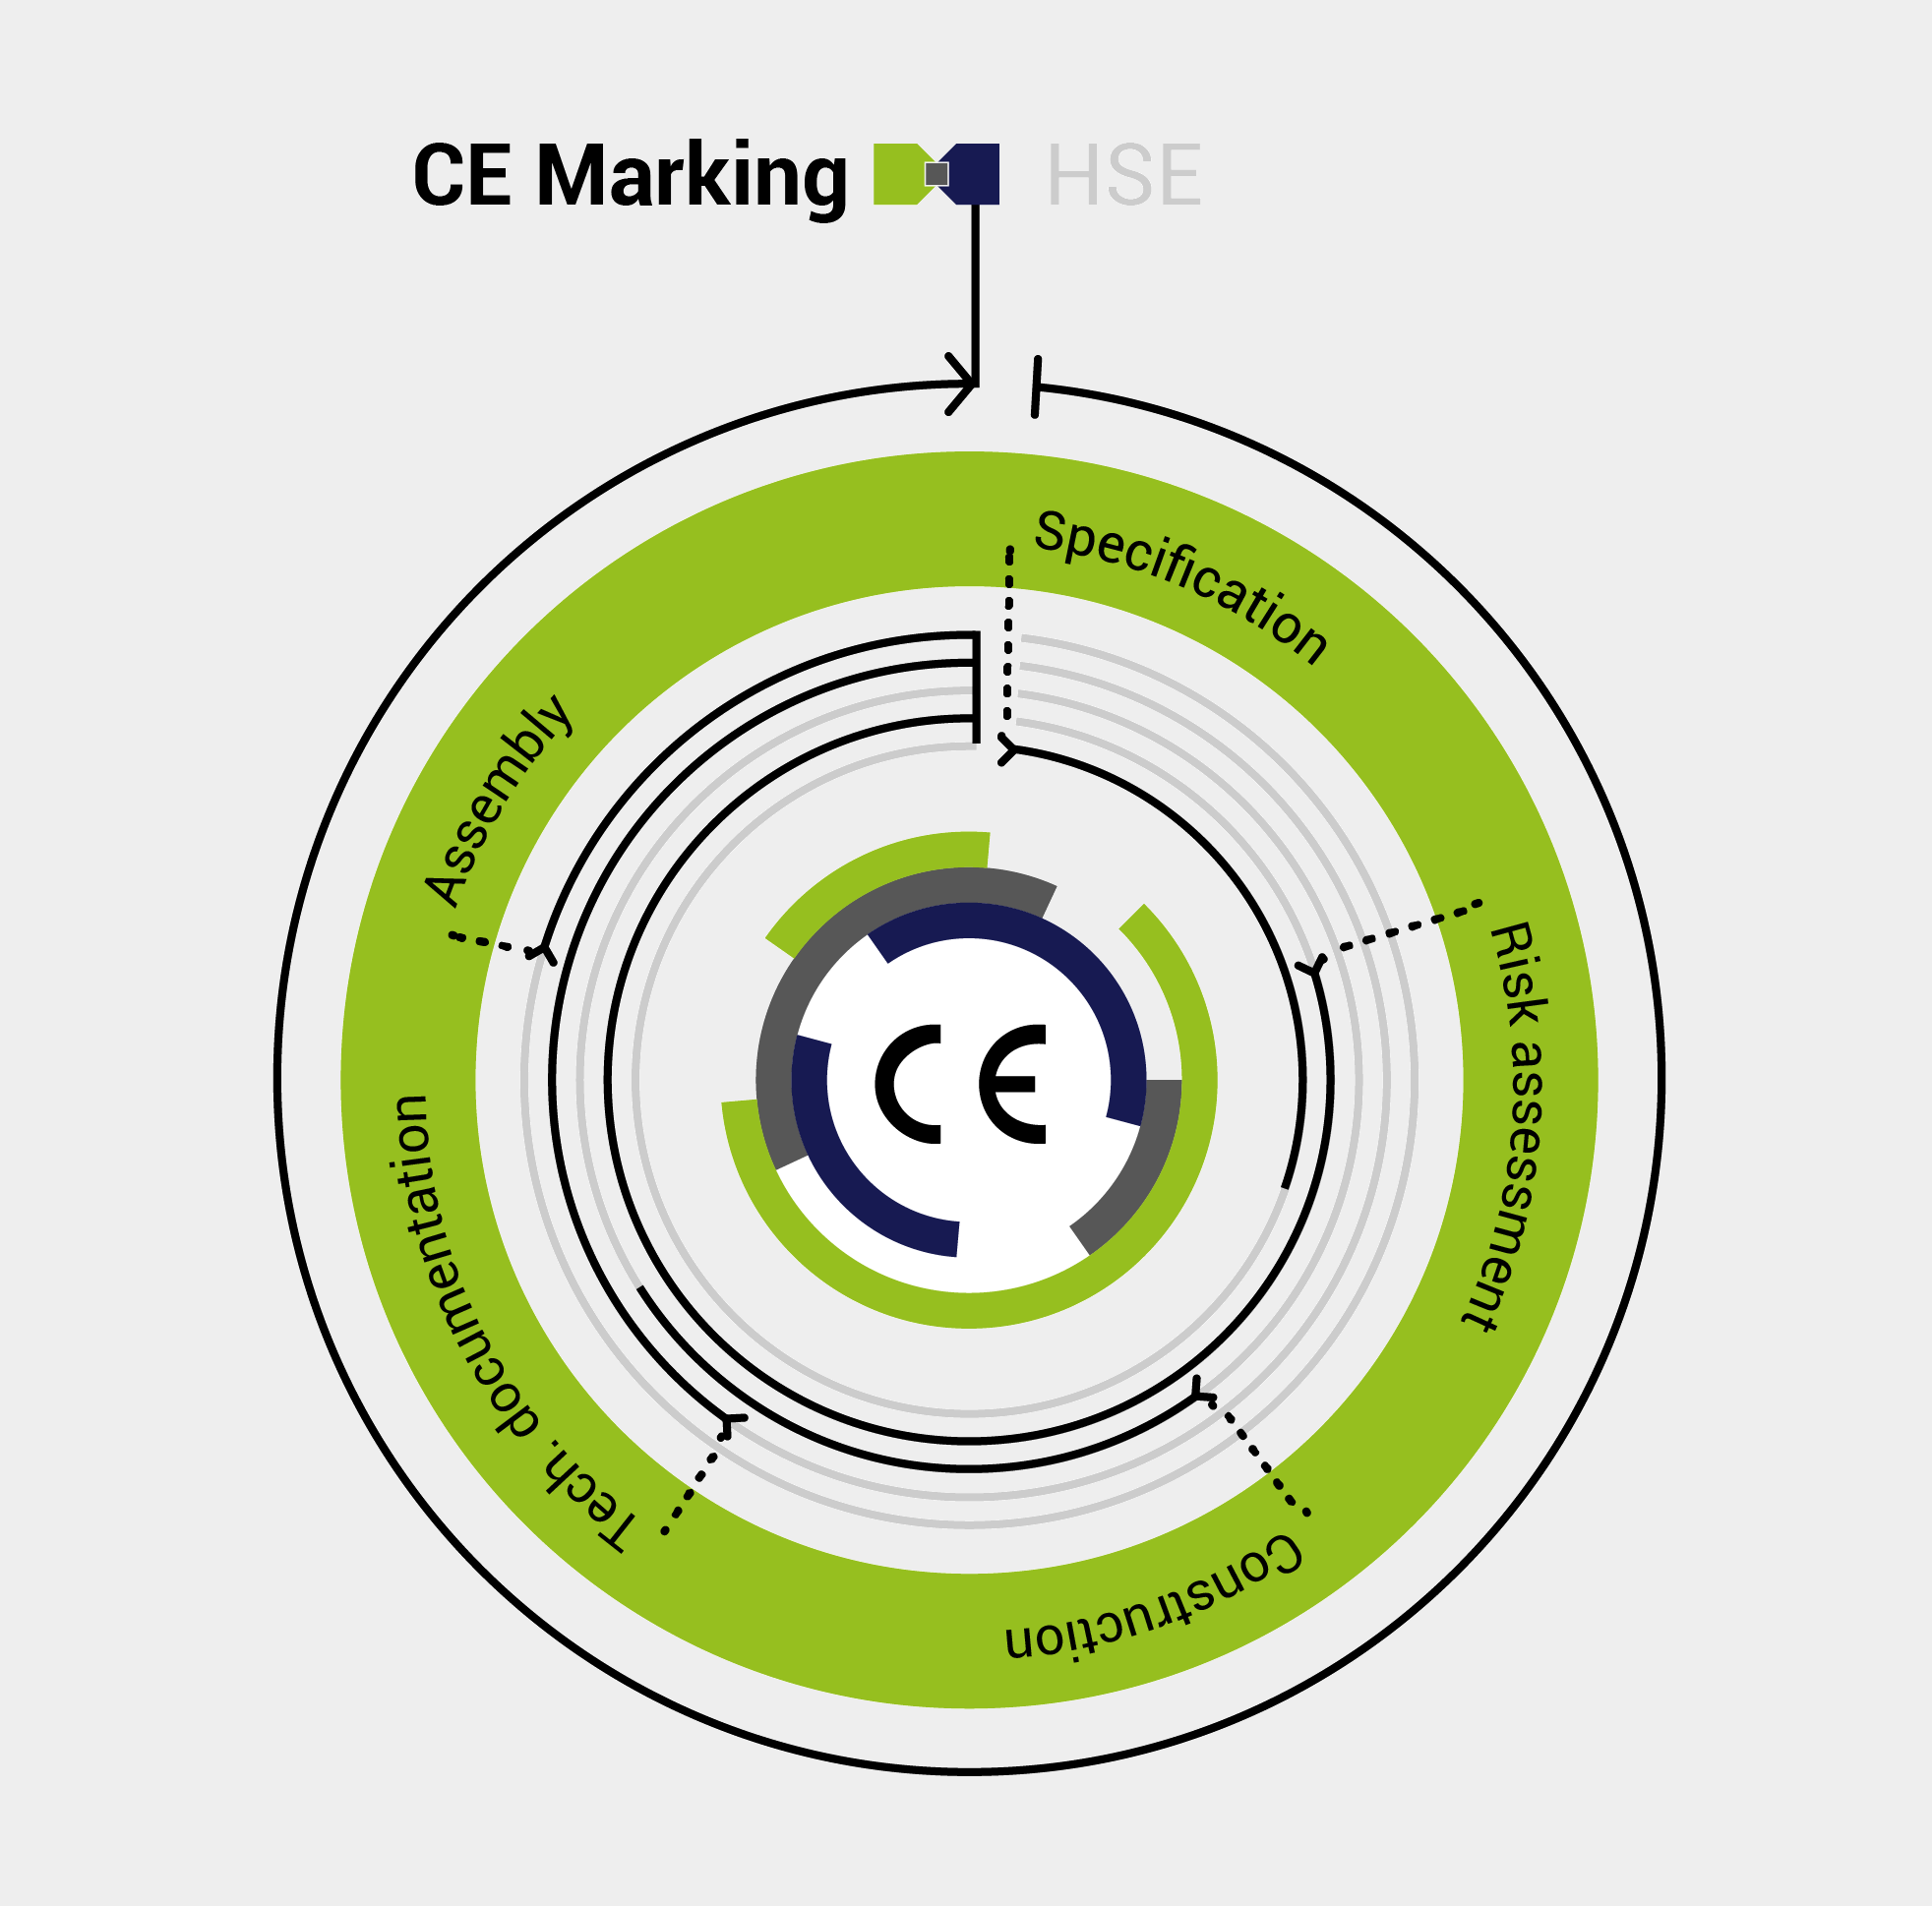 chart of the ce marking process